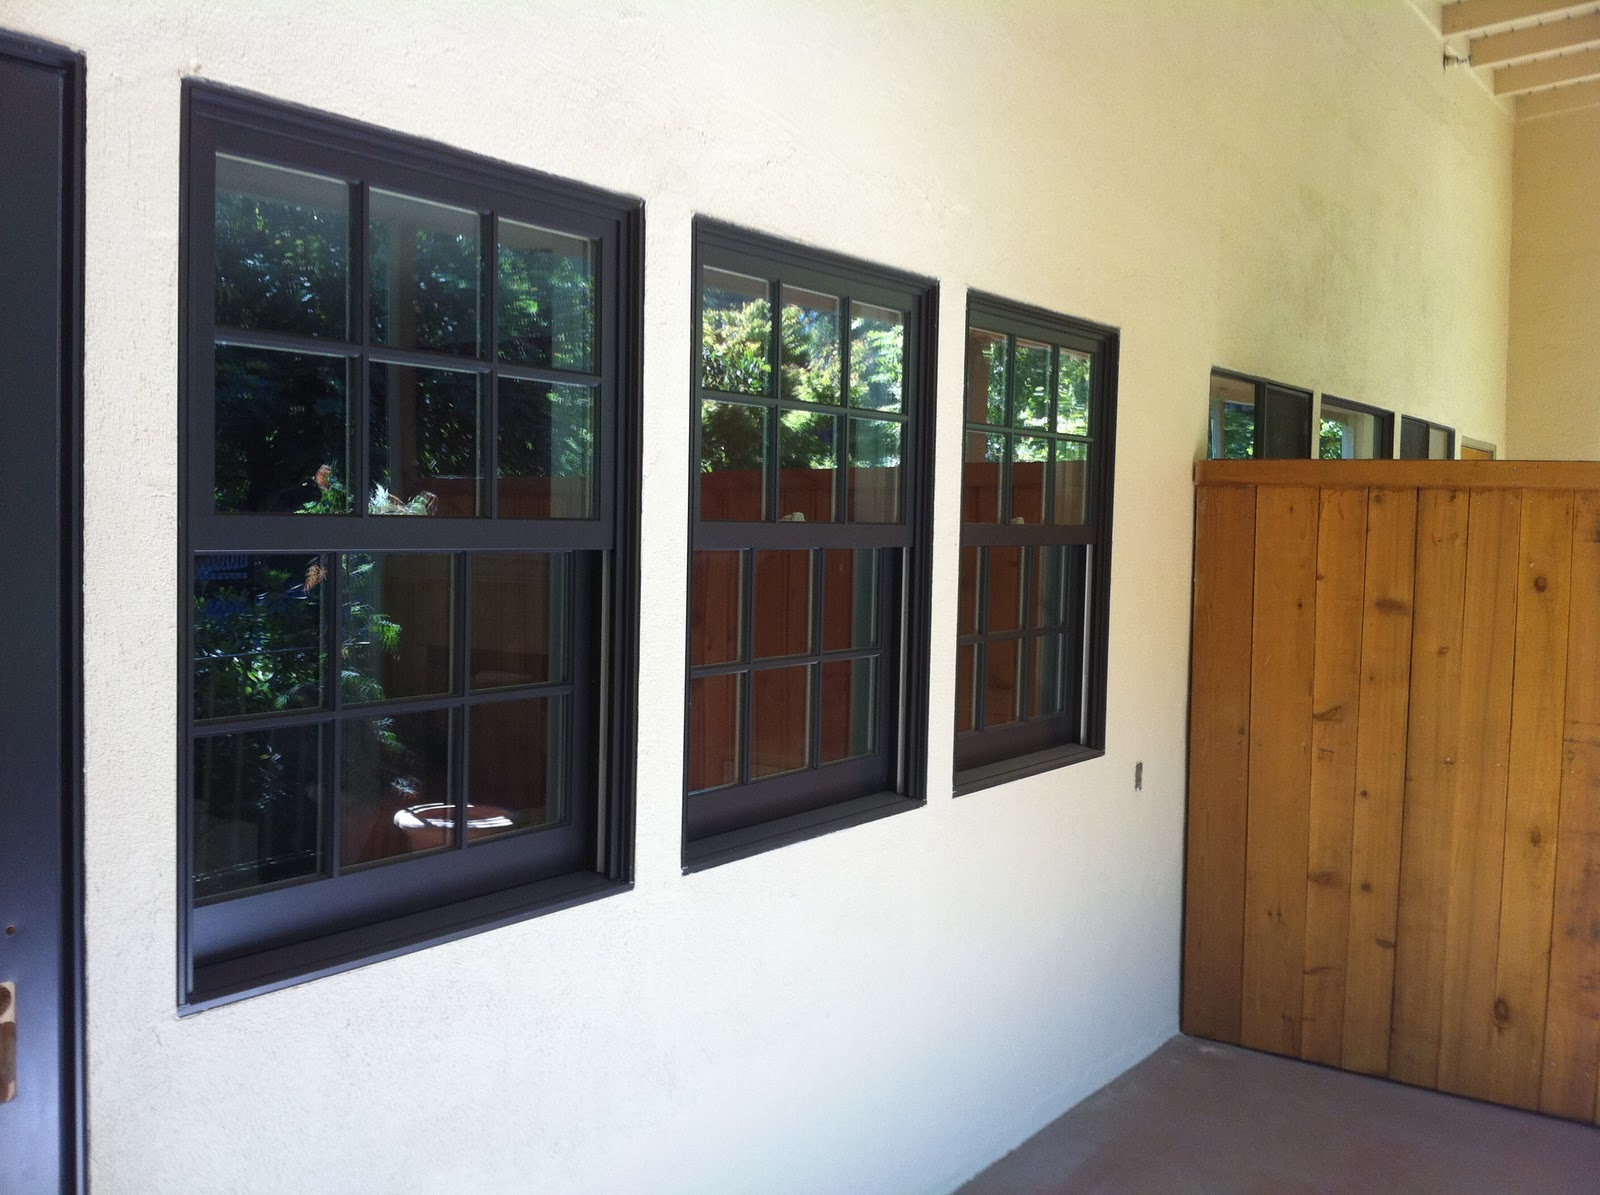 Marvin windows and doors commercial project in san rafael for Marvin transom windows